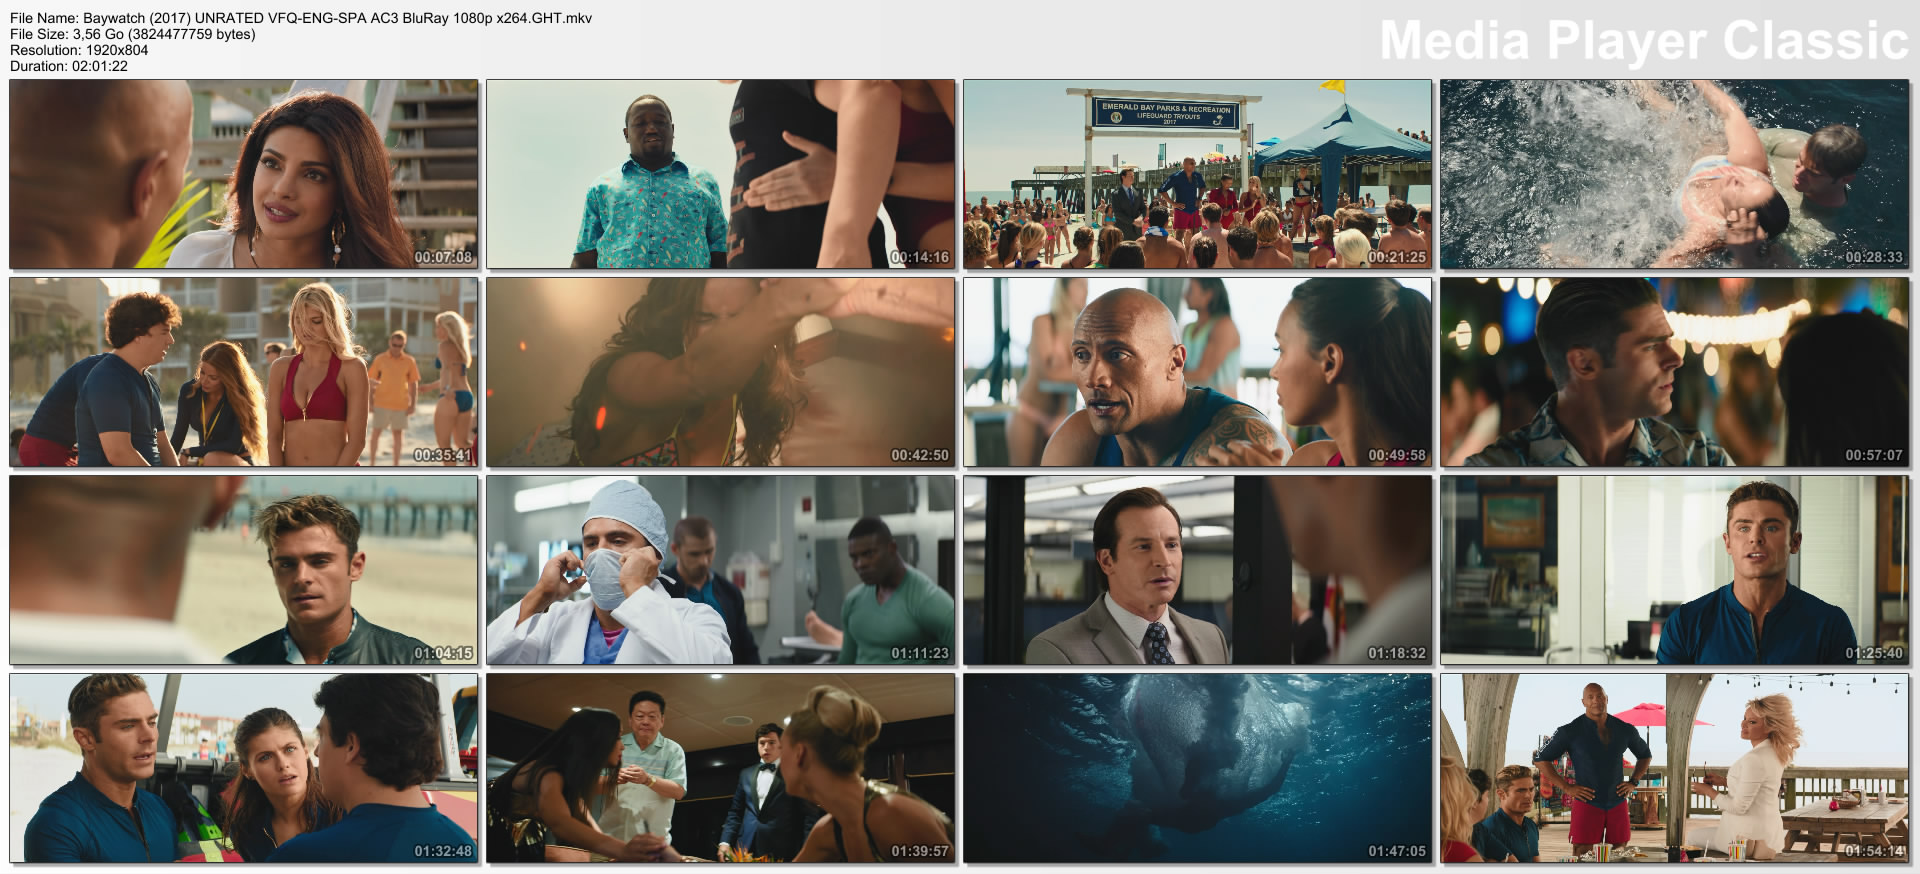 Baywatch (2017) UNRATED VFQ-ENG-SPA AC3 BluRay 1080p x264.GHT